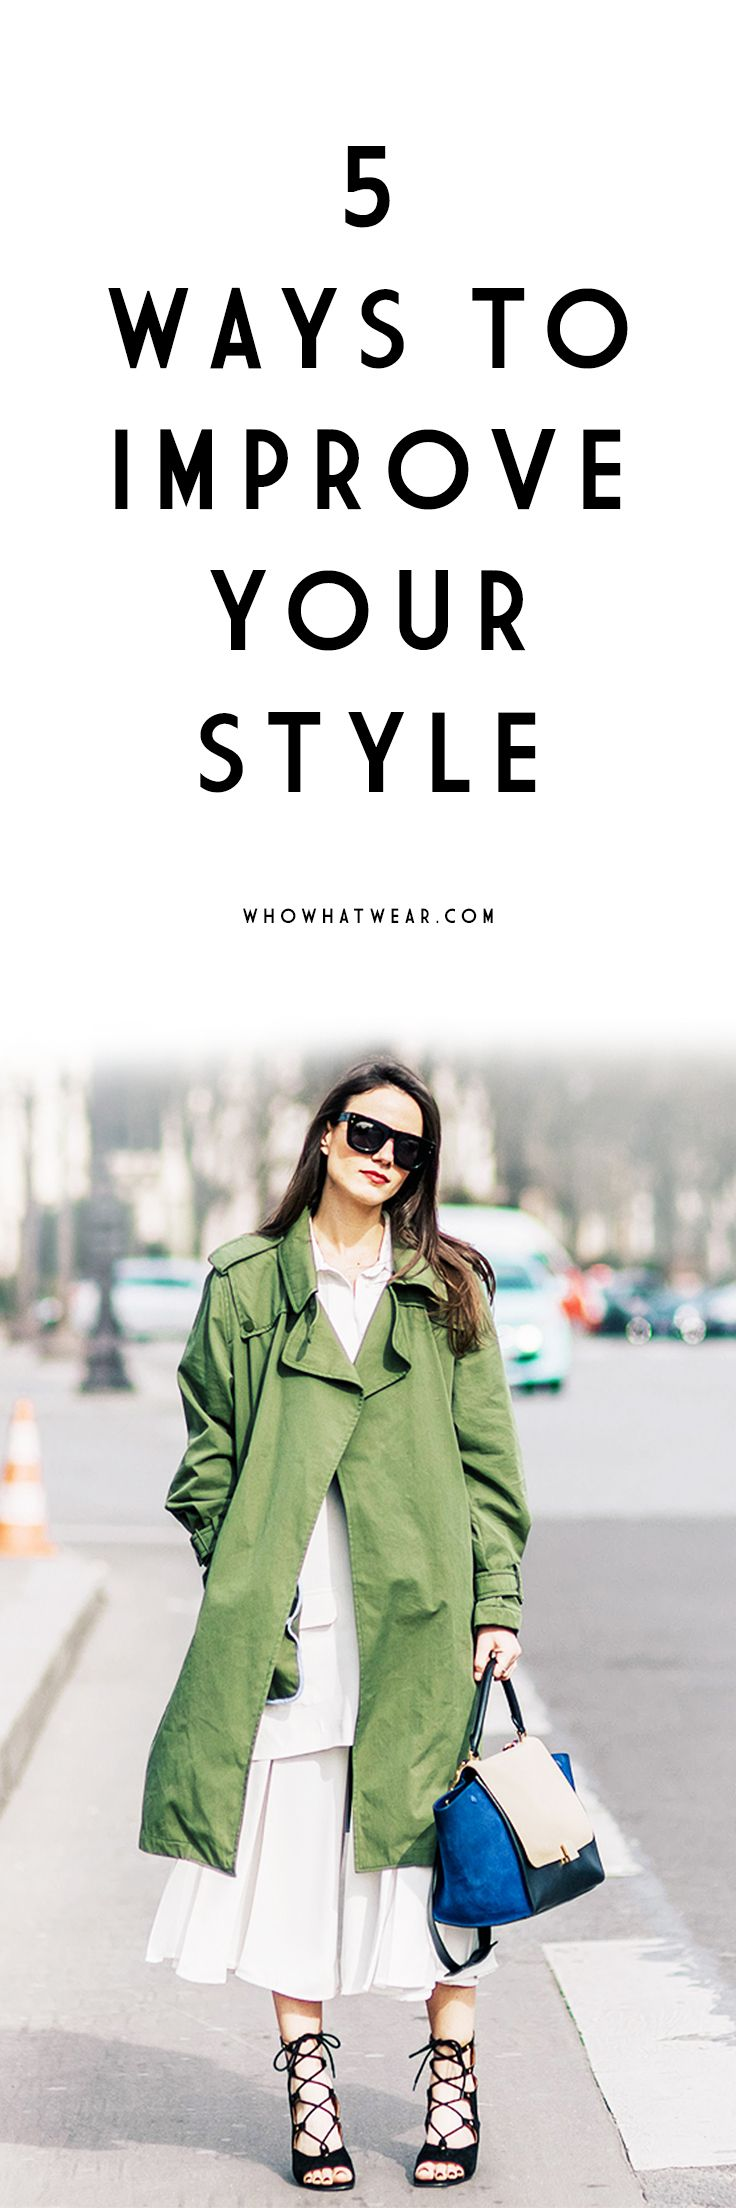 What is a fashion style 60